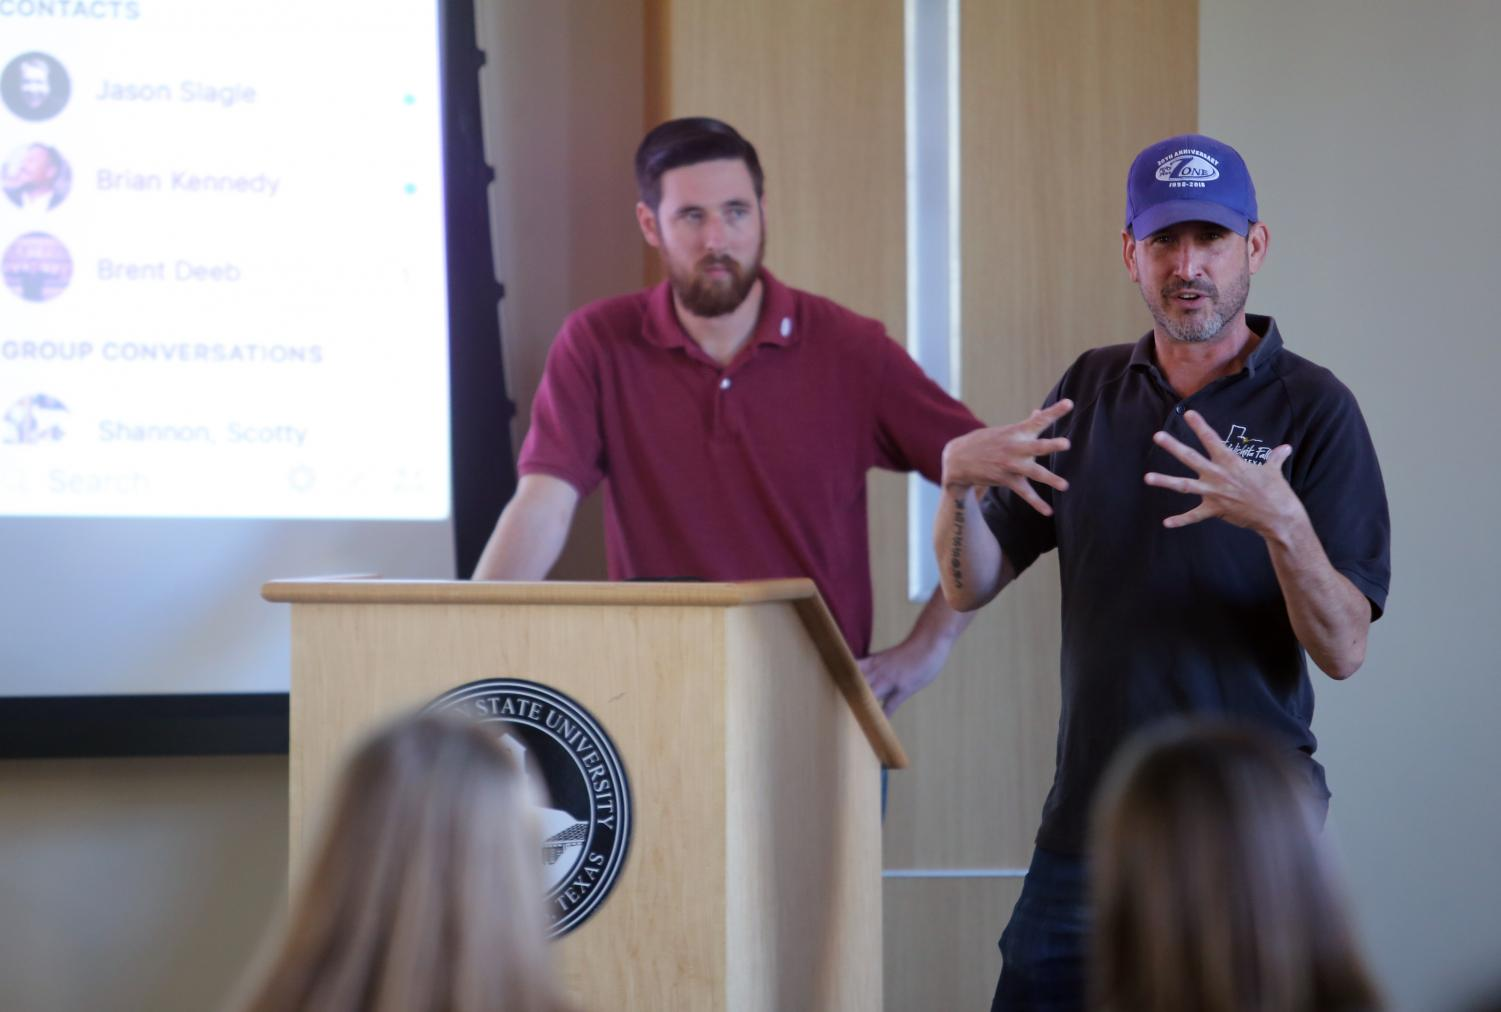 Ben Remmert, social media marketing specialist, and Eric Crosslin, public information for the City of Wichita Falls, discuss social media from a government perspective at the third MSU Texas Social Media Day, Oct. 1, 2018.